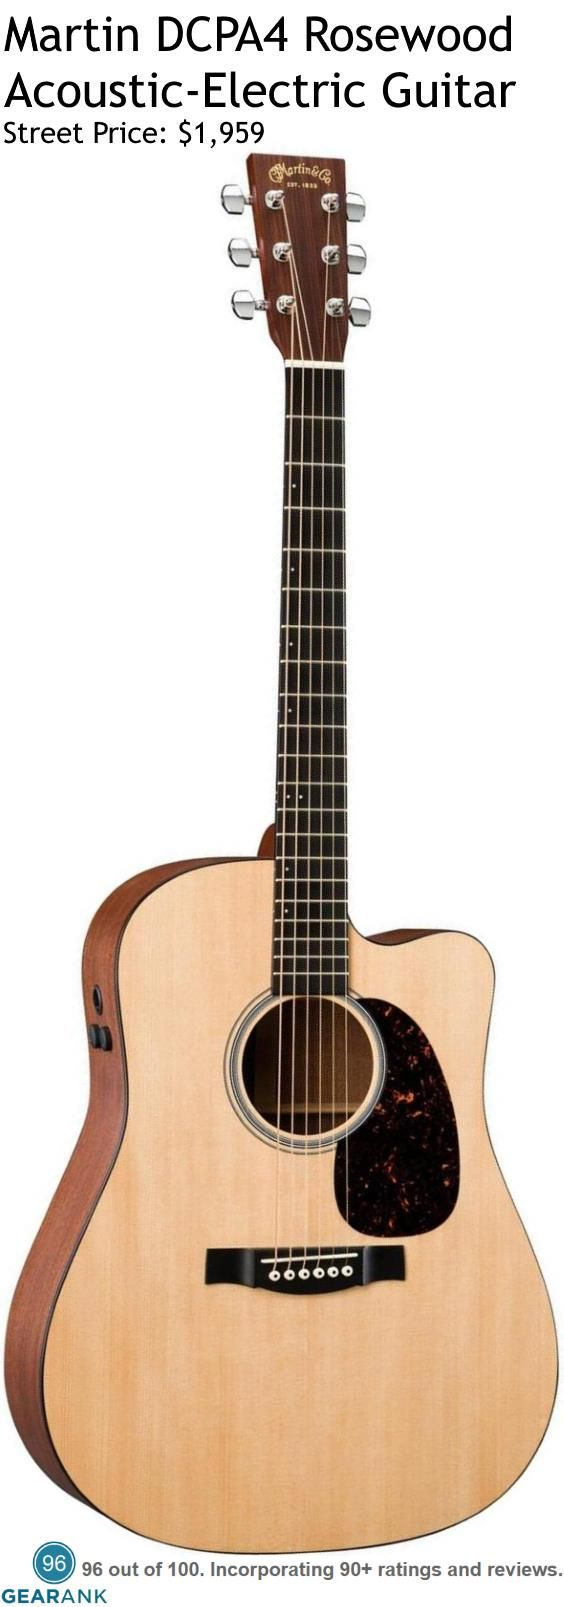 """Martin DCPA4 Rosewood Acoustic-Electric Guitar. Specifications: Top: Solid Sitka Spruce - Body: Solid East Indian Rosewood back & sides - Finish: Gloss - Natural - Bridge: Richlite - Neck: Select Hardwood - Fingerboard: Richlite Fingerboard Radius: 16"""" - Scale Length: 25.4"""" - Nut Width: 1.75"""" - Nut: White Corian - Saddle: Compensated White Tusq - Electronics: Fishman F1 Analog preamp & pickup."""